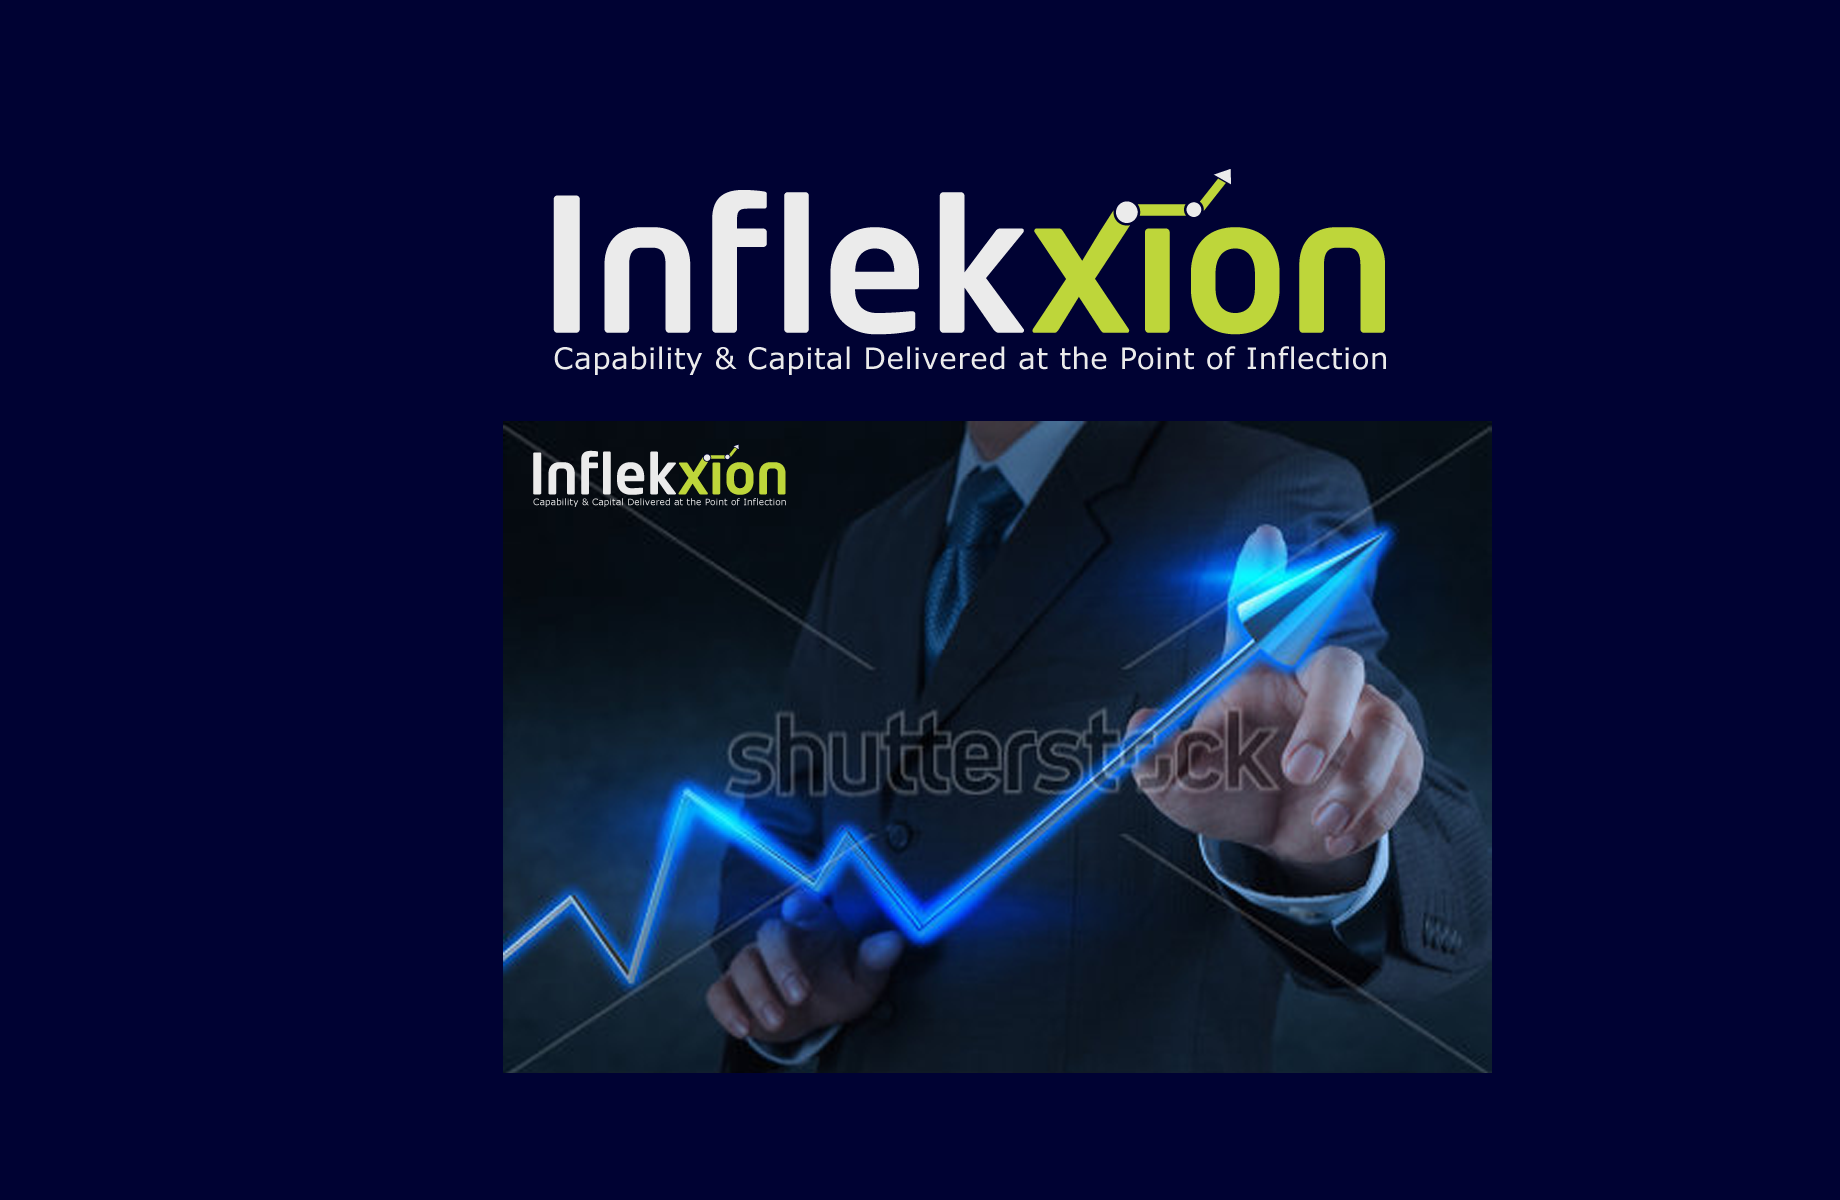 Logo Design by Jan Chua - Entry No. 93 in the Logo Design Contest Professional Logo Design for Inflekxion.